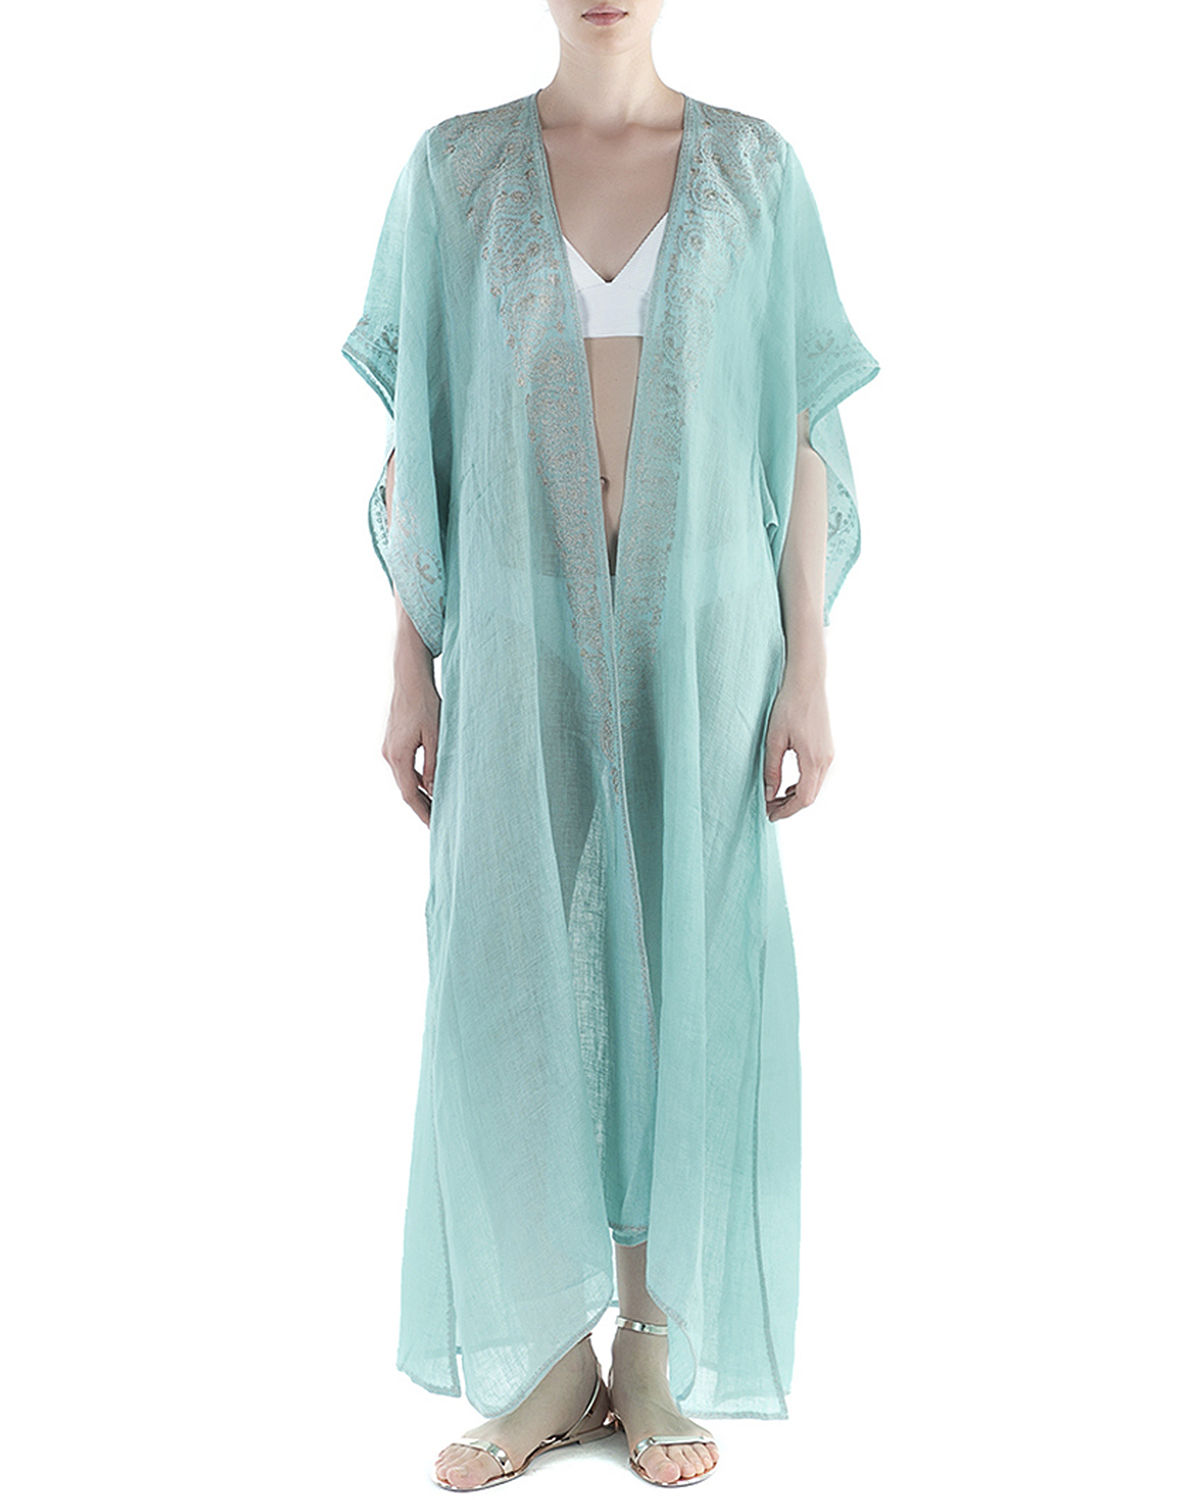 Xanadu Embroidered Long Coverup Kimono